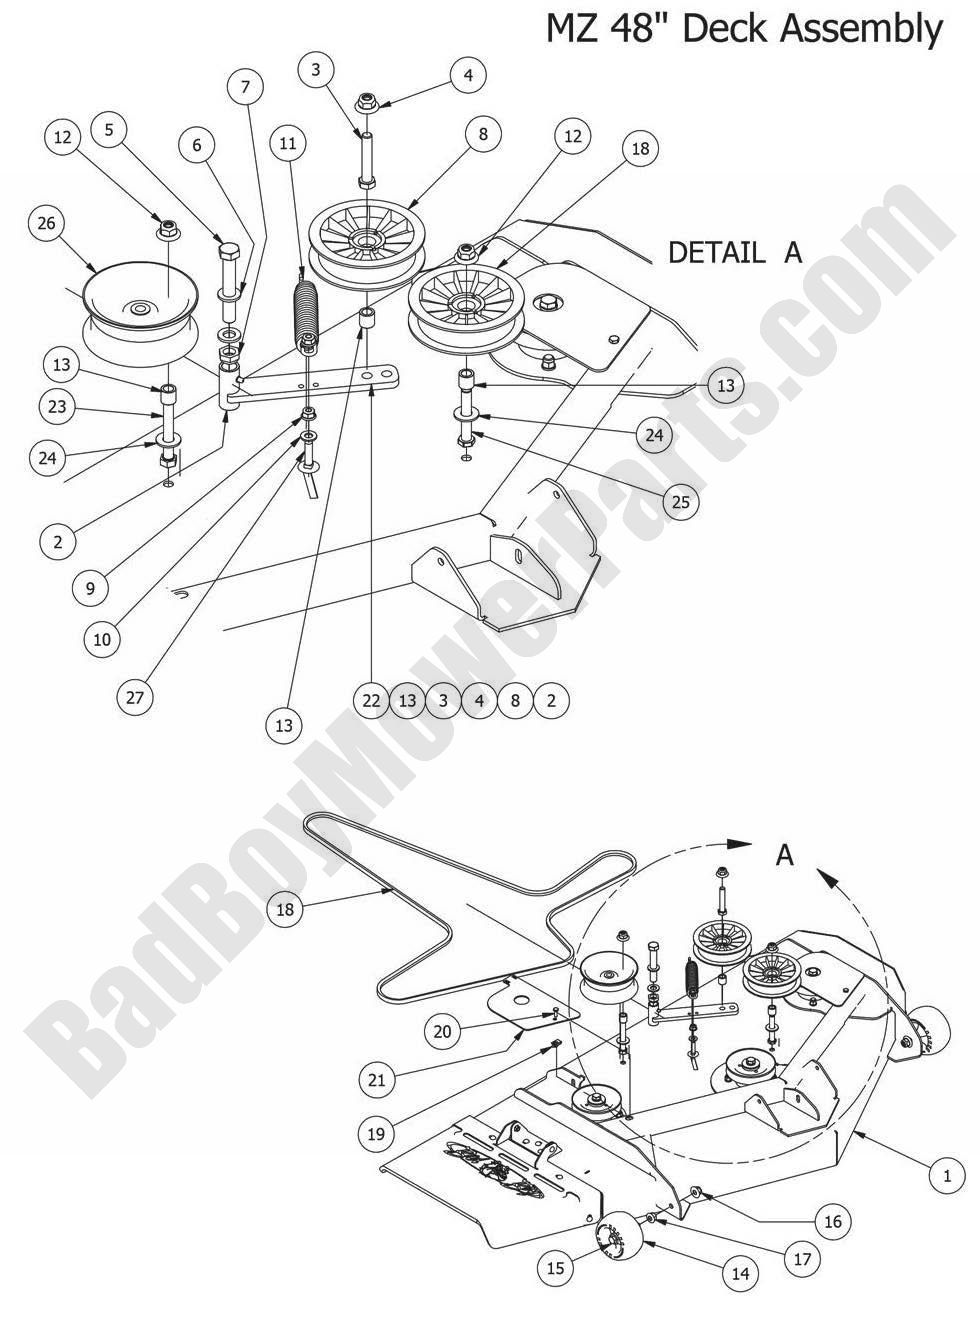 MZMagnum_2014_MZ 48inch Deck Assembly 01 bad boy mowers wiring diagram wiring diagram simonand bad boy mower wiring diagram at creativeand.co